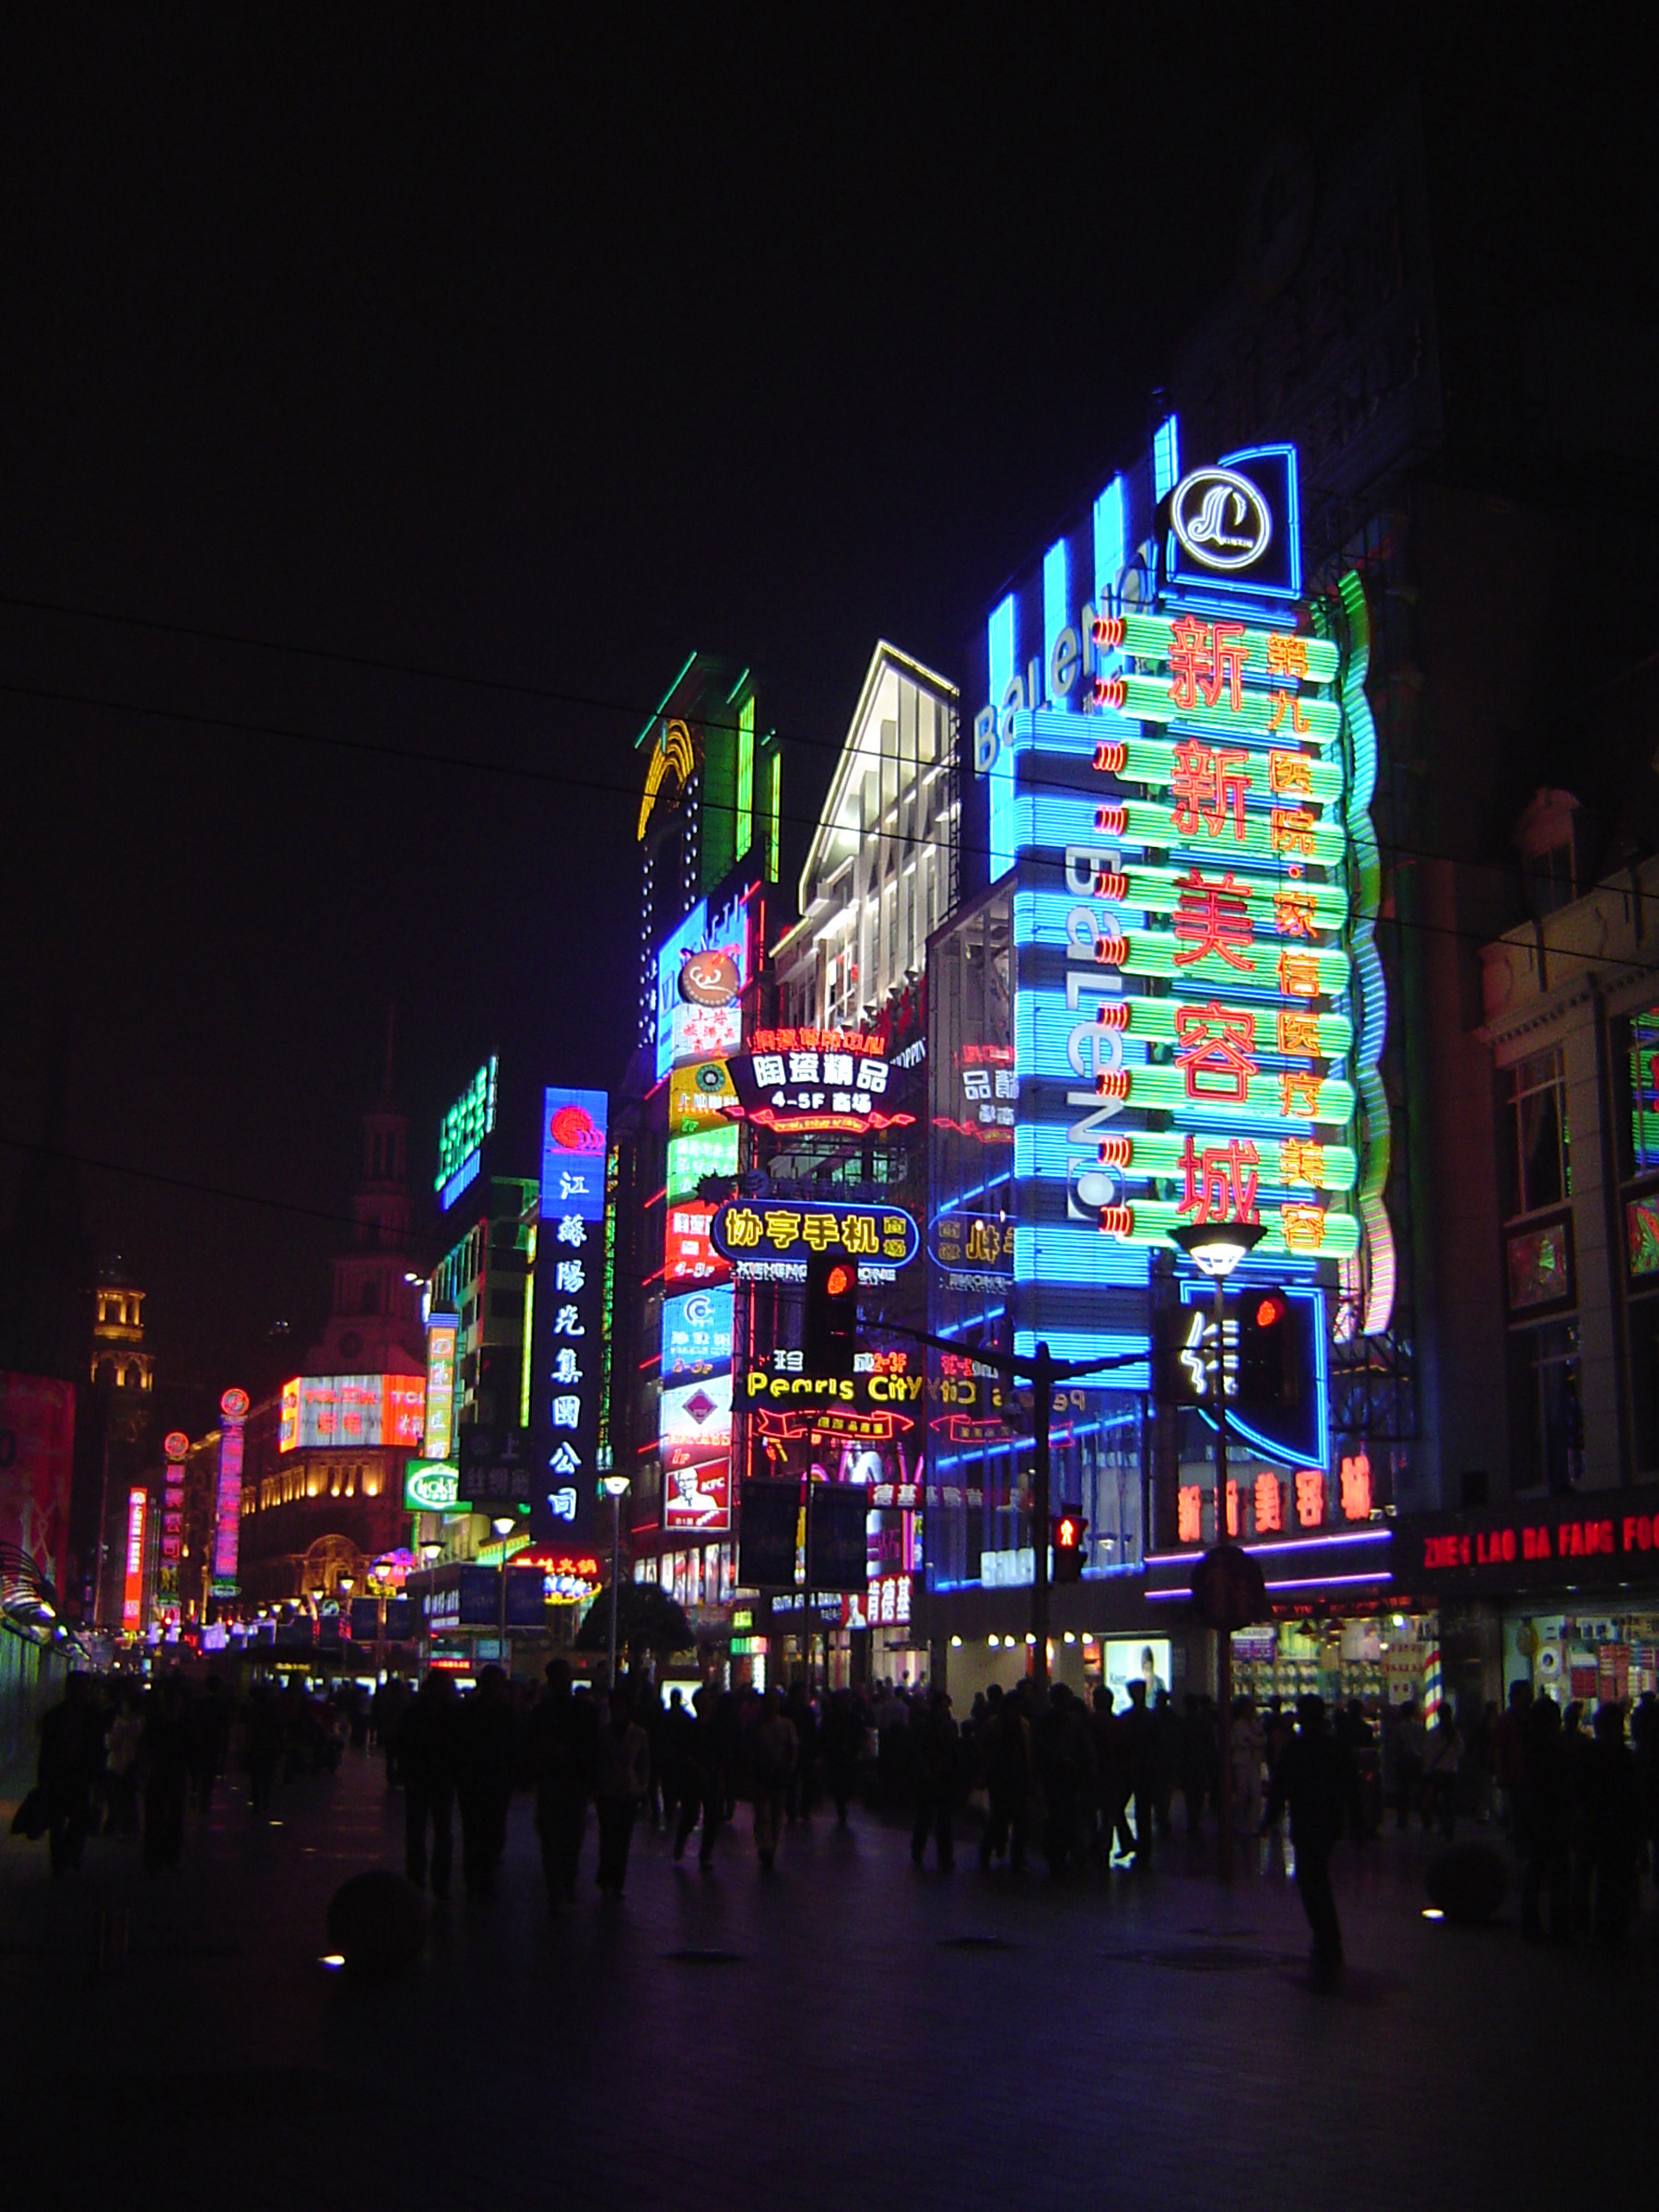 Free Fall Themed Desktop Wallpaper Free Stock Photo Of Colorful Neon Lights In Chinese City